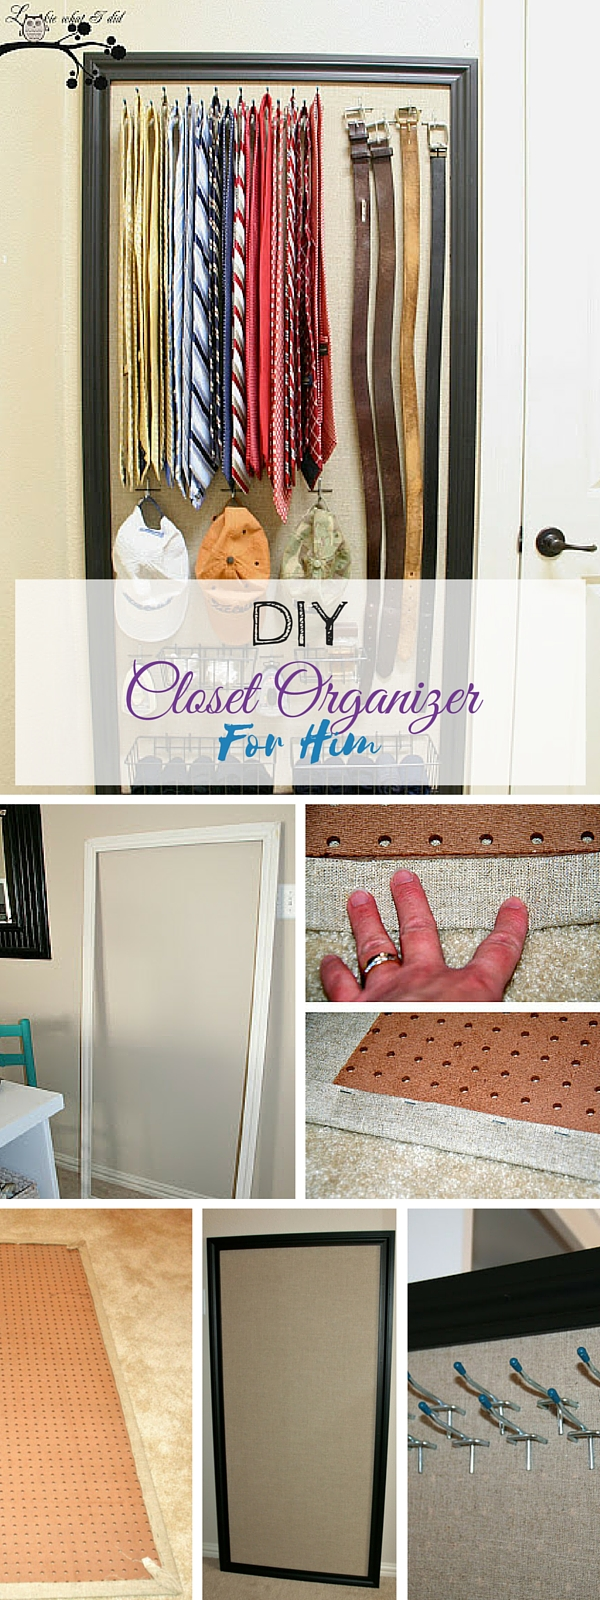 Check out the tutorial:  Closet Organizer for Him